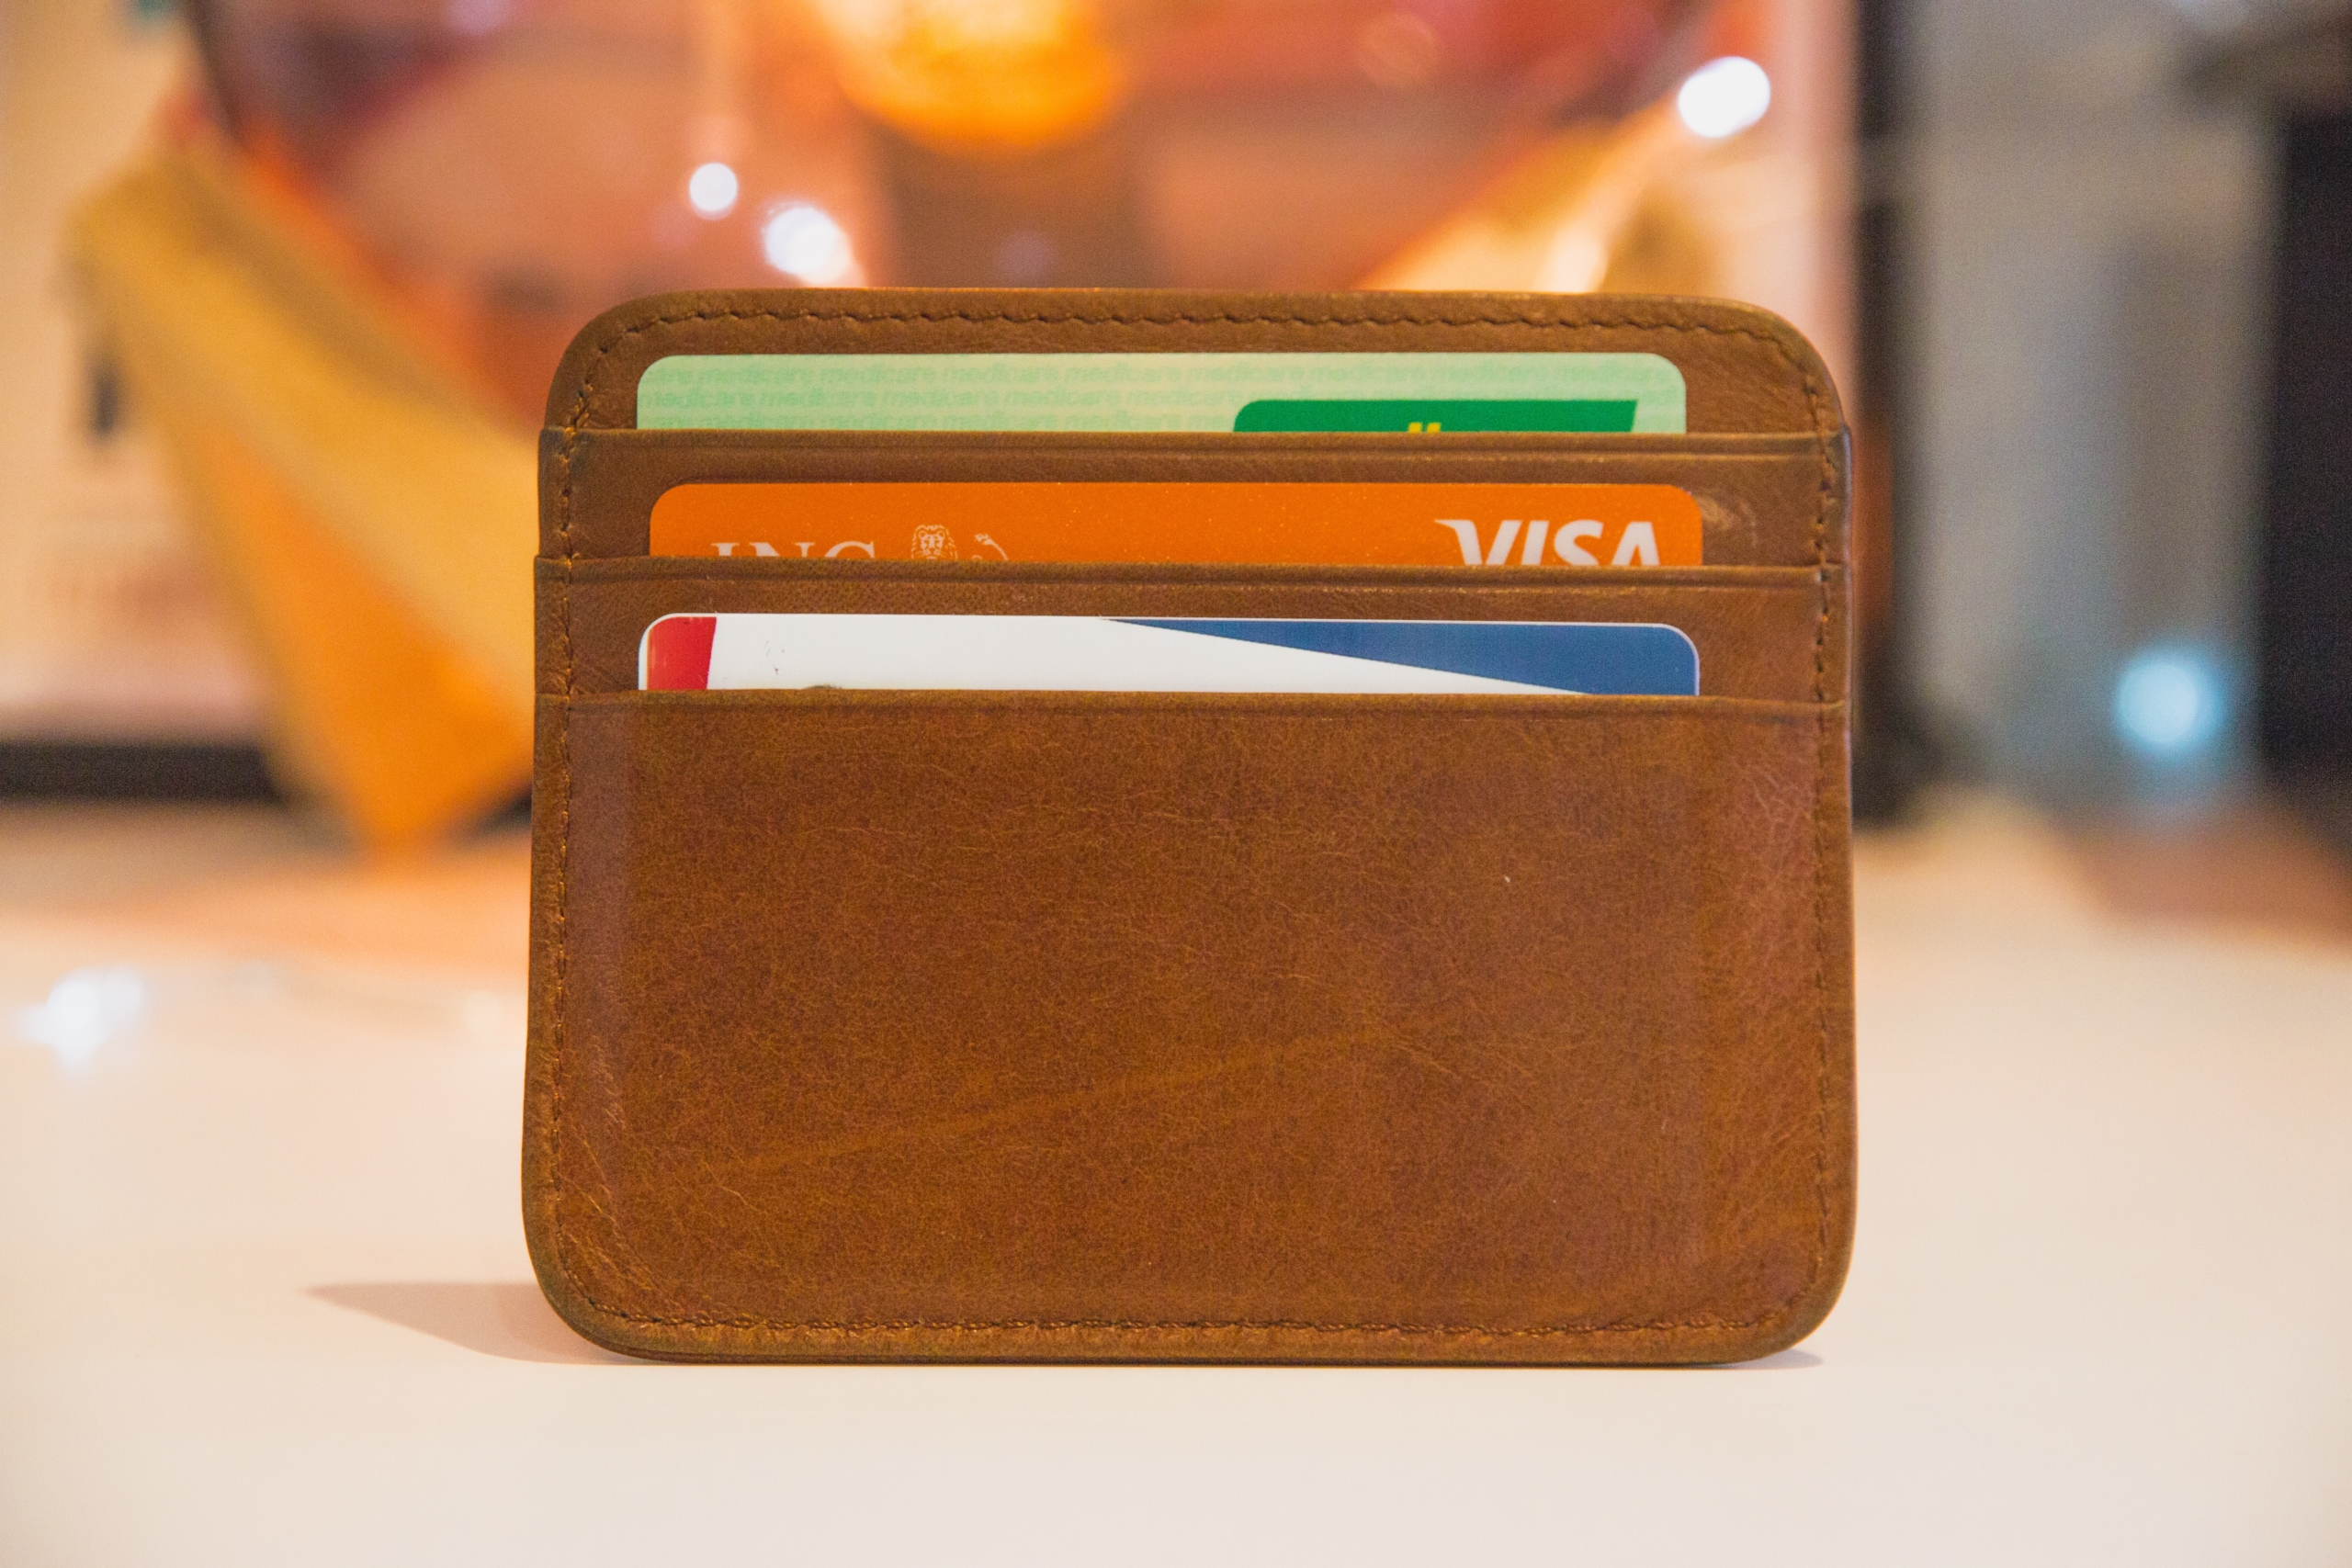 How Do Balance Transfer Credit Cards Work?